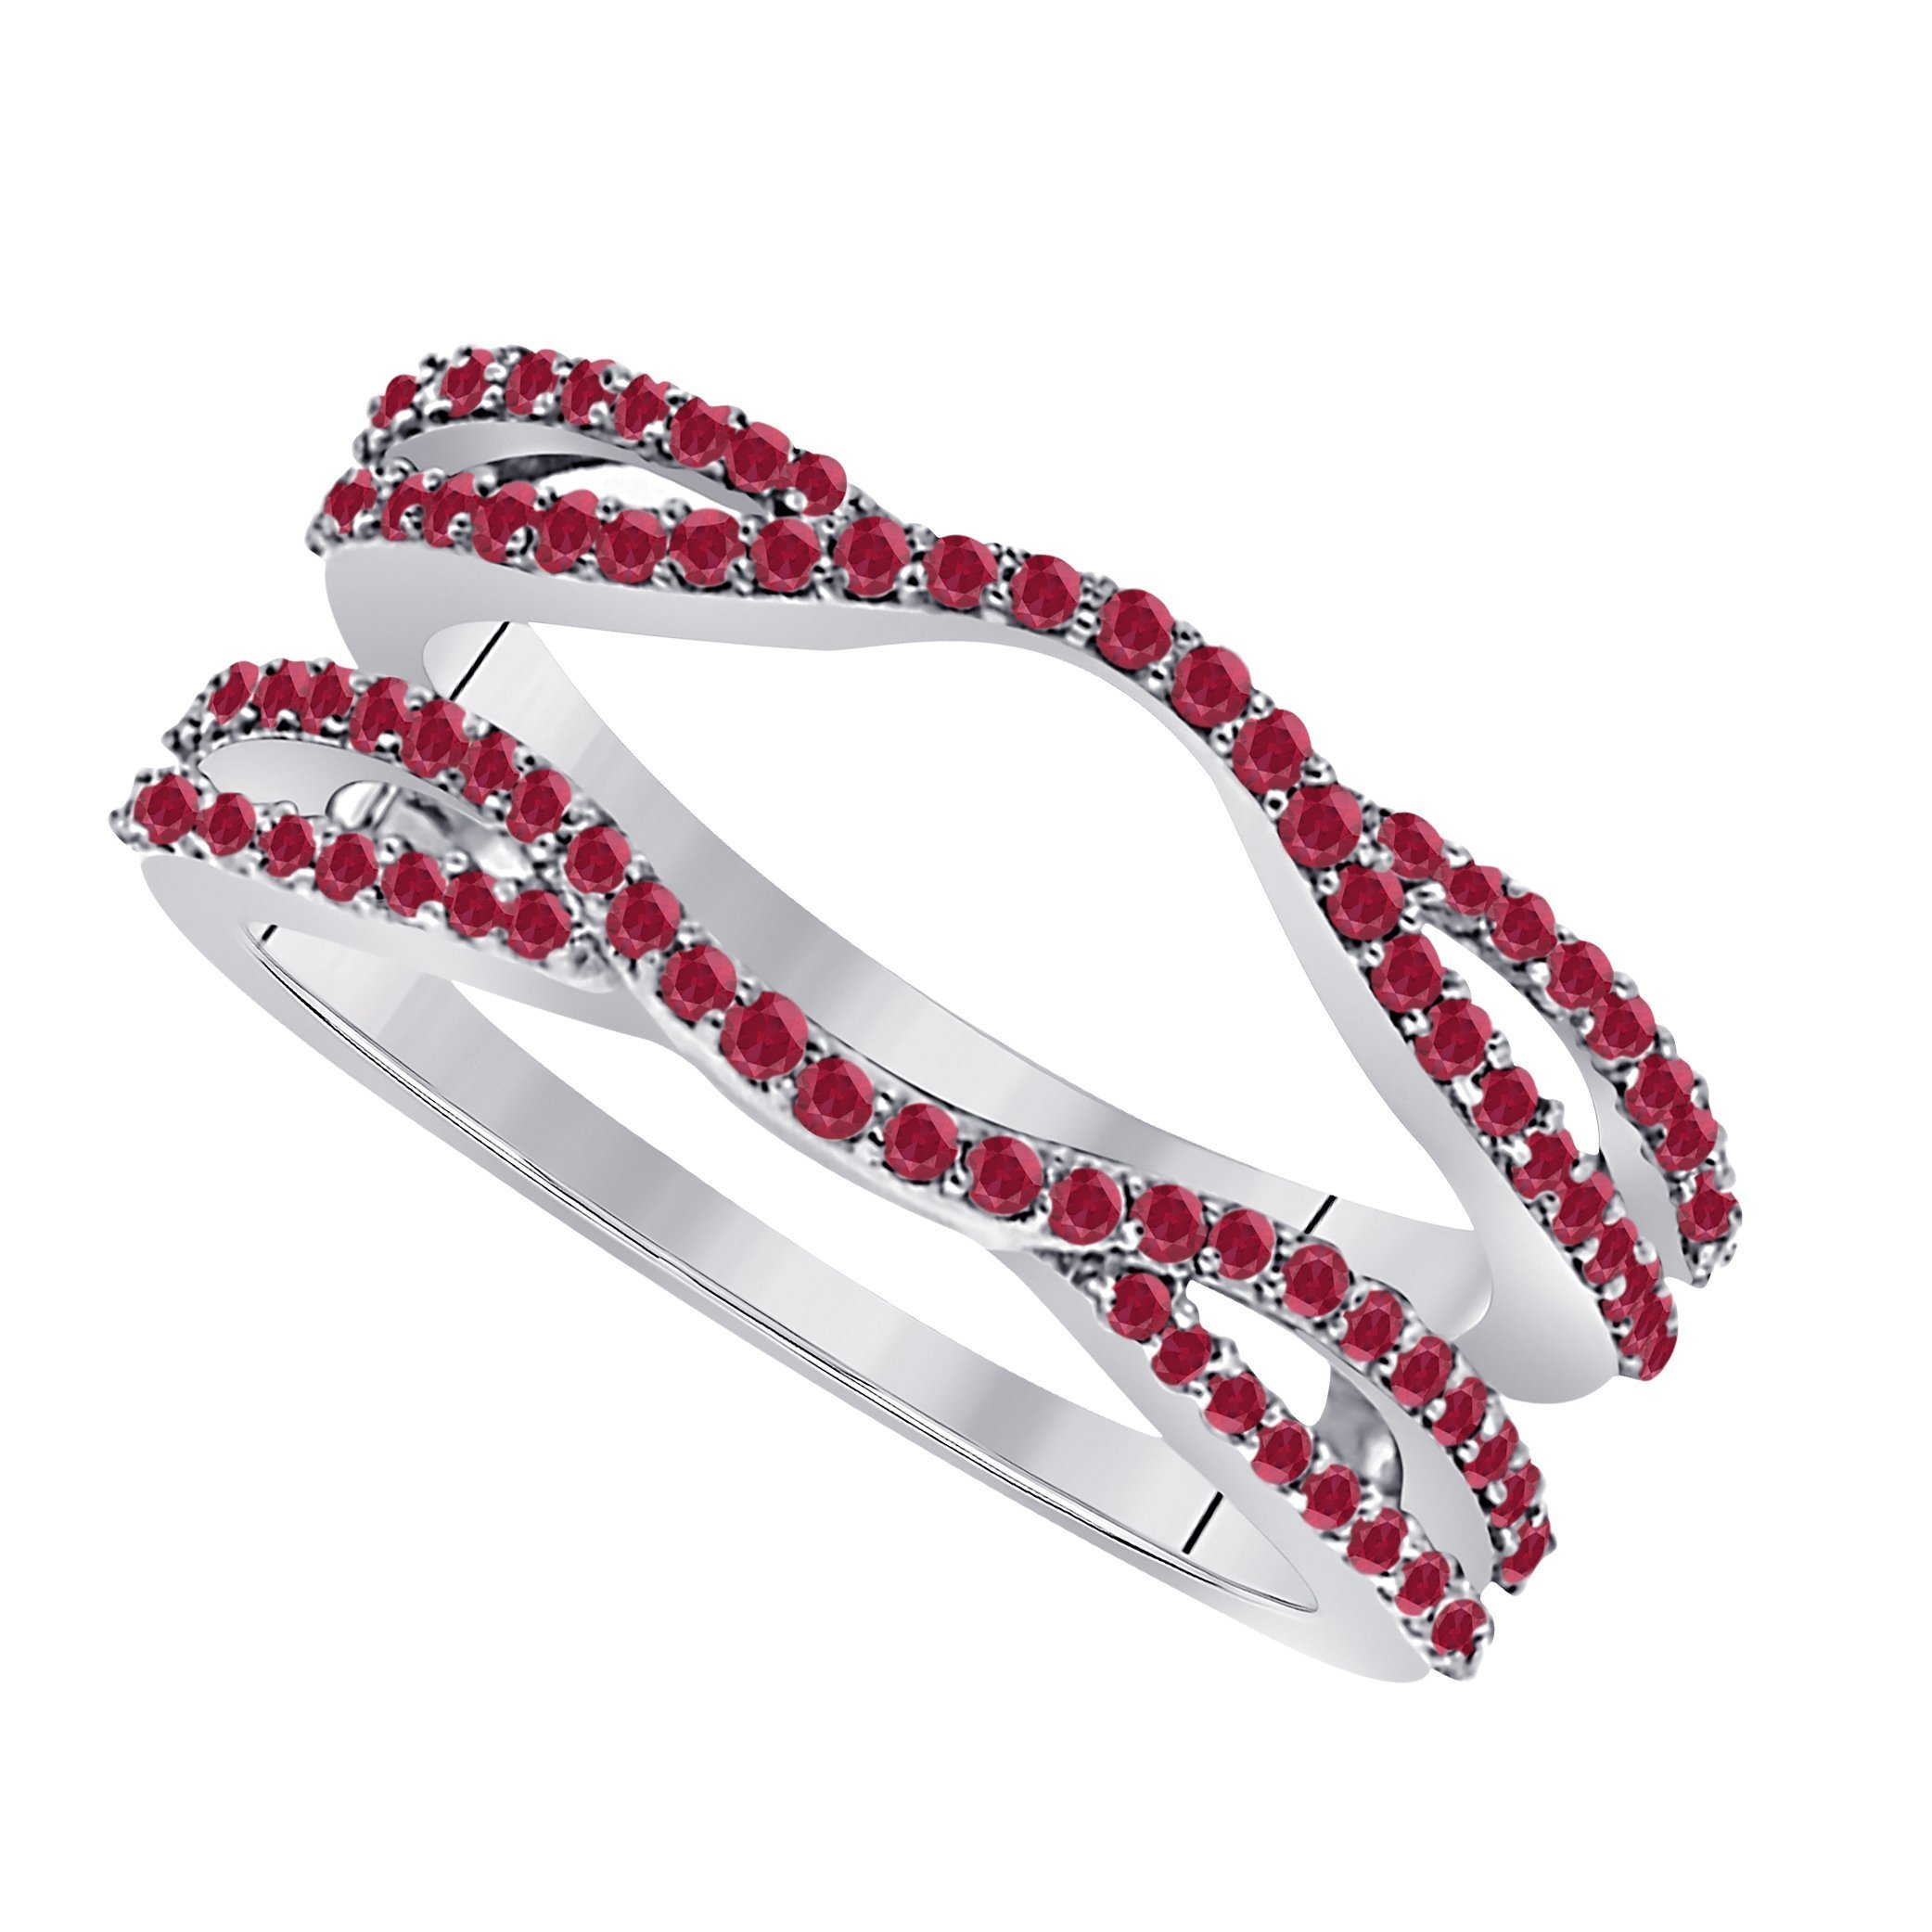 Star Retail 1/2 Ct 14K White Gold Finish Round Cut Lab Created Red Ruby Ladies Anniversary Wedding Band Enhancer Guard Double Chevron Ring